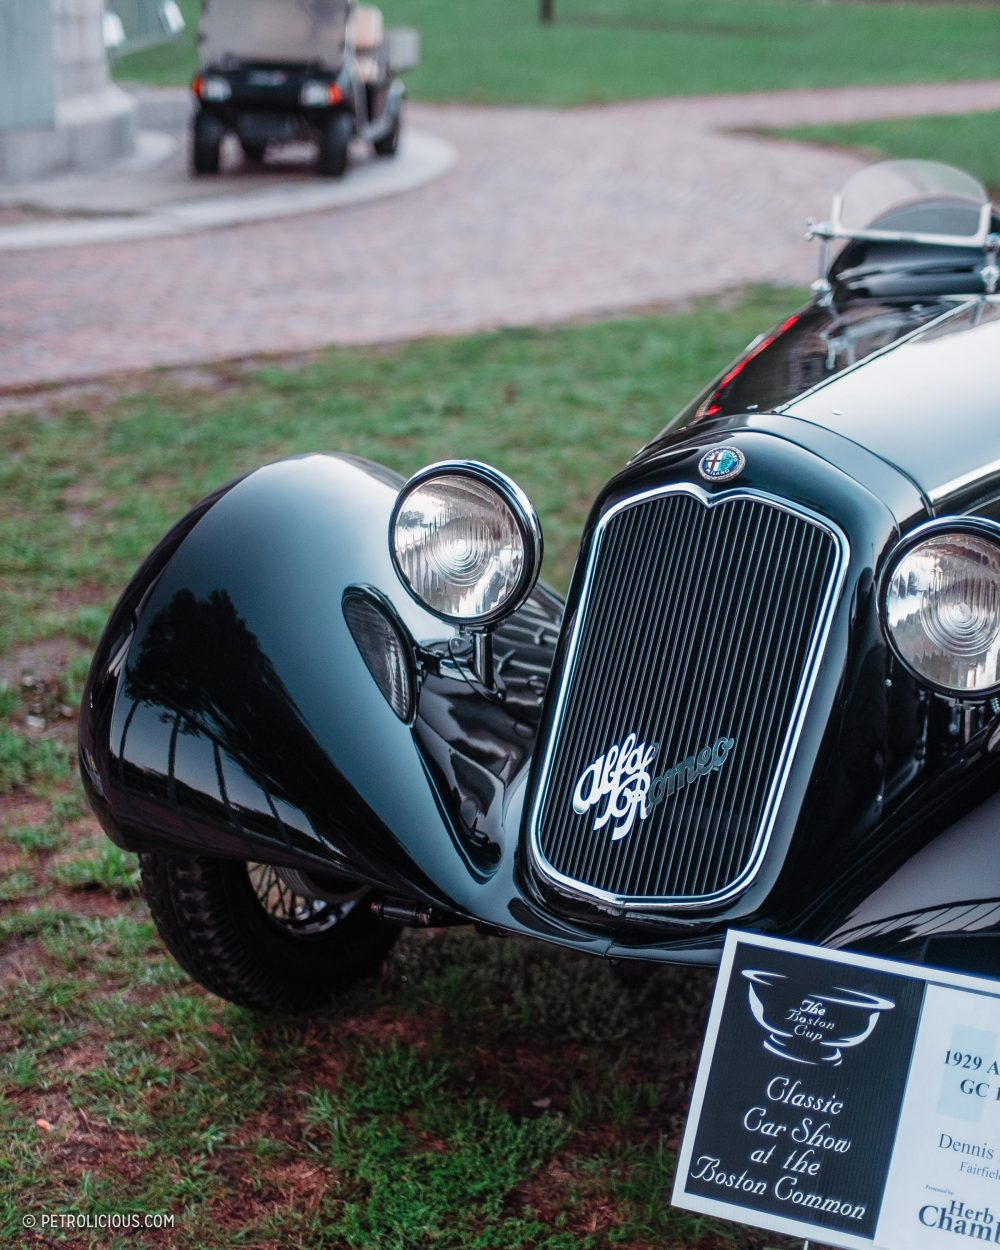 The Boston Cup Puts A Car Show In Americas Oldest Public Park - New england car show boston